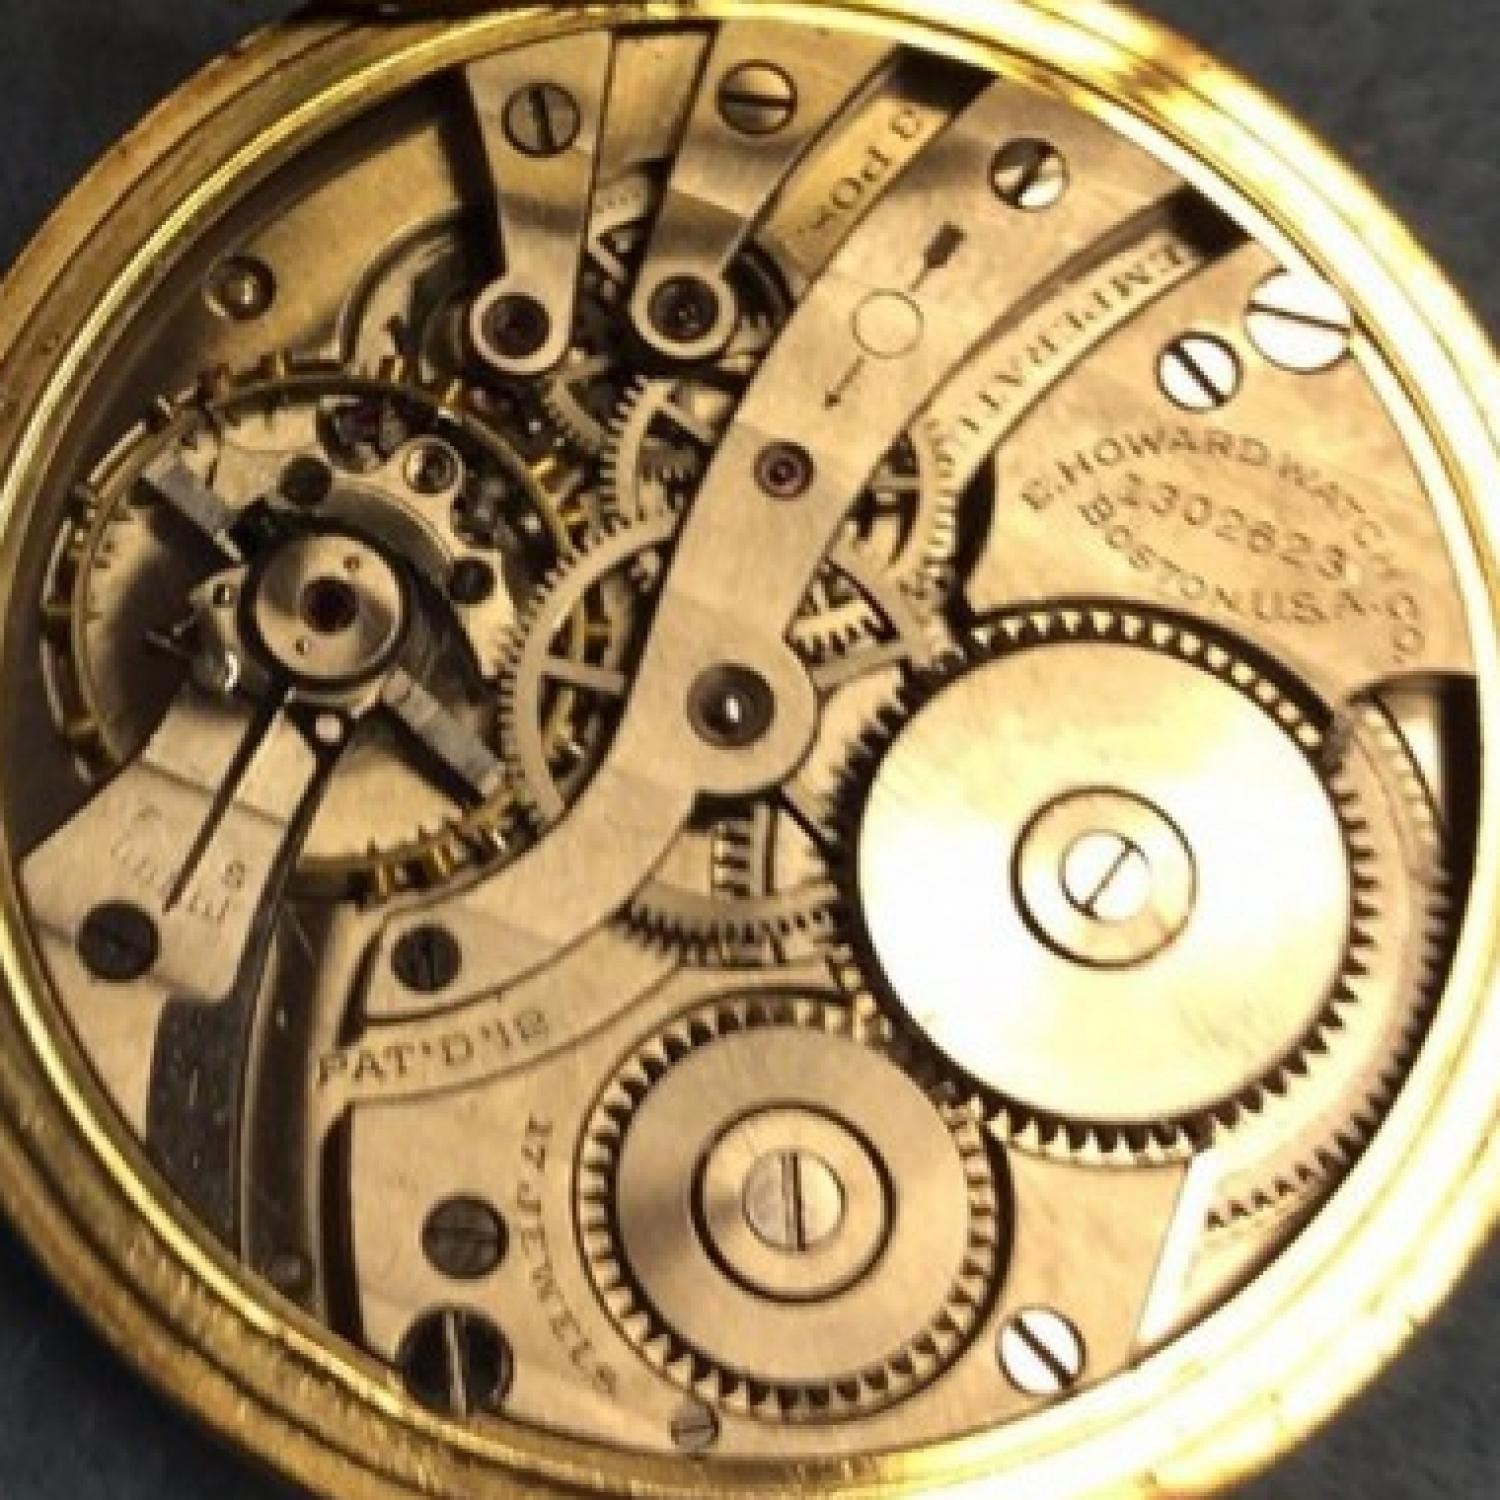 Image of E. Howard Watch Co. (Keystone) Series 7 #1302623 Movement